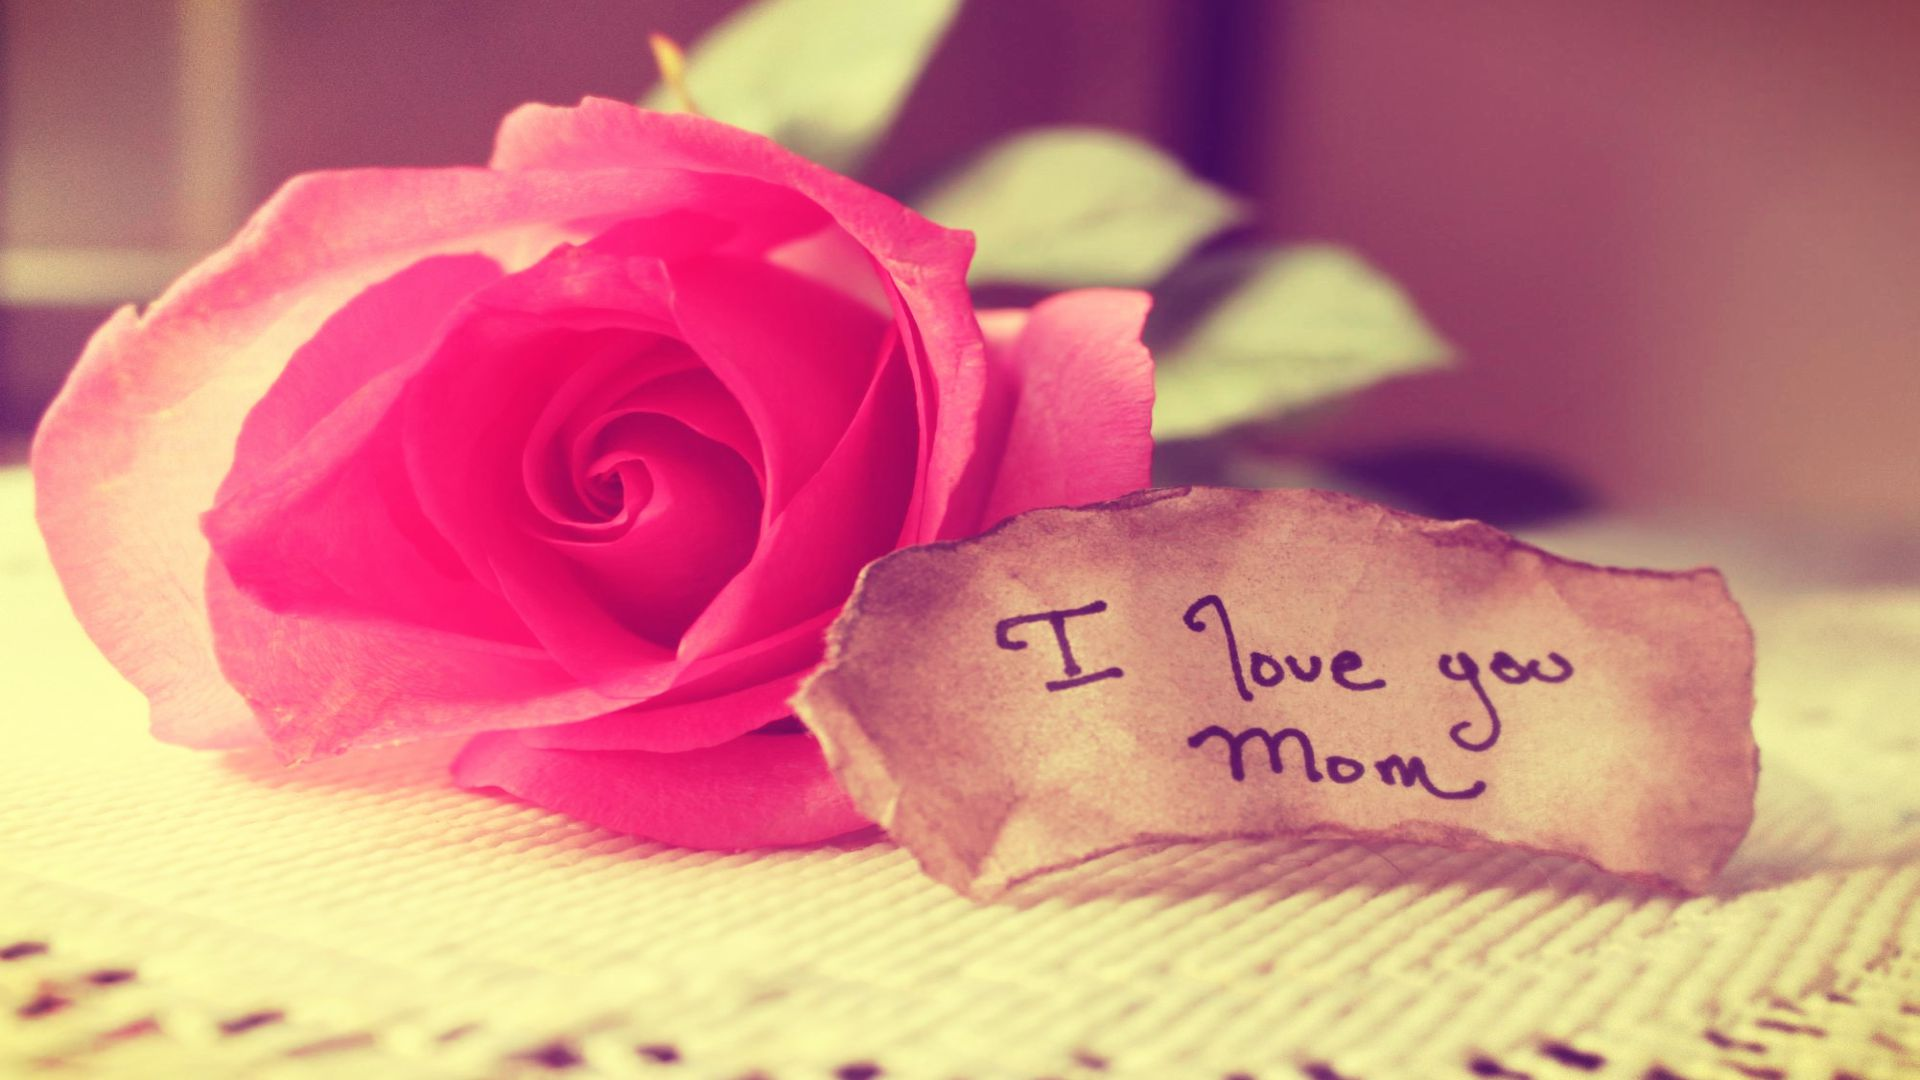 Happy Mother s Day 2014 - Wallpaper, High Definition, High ...